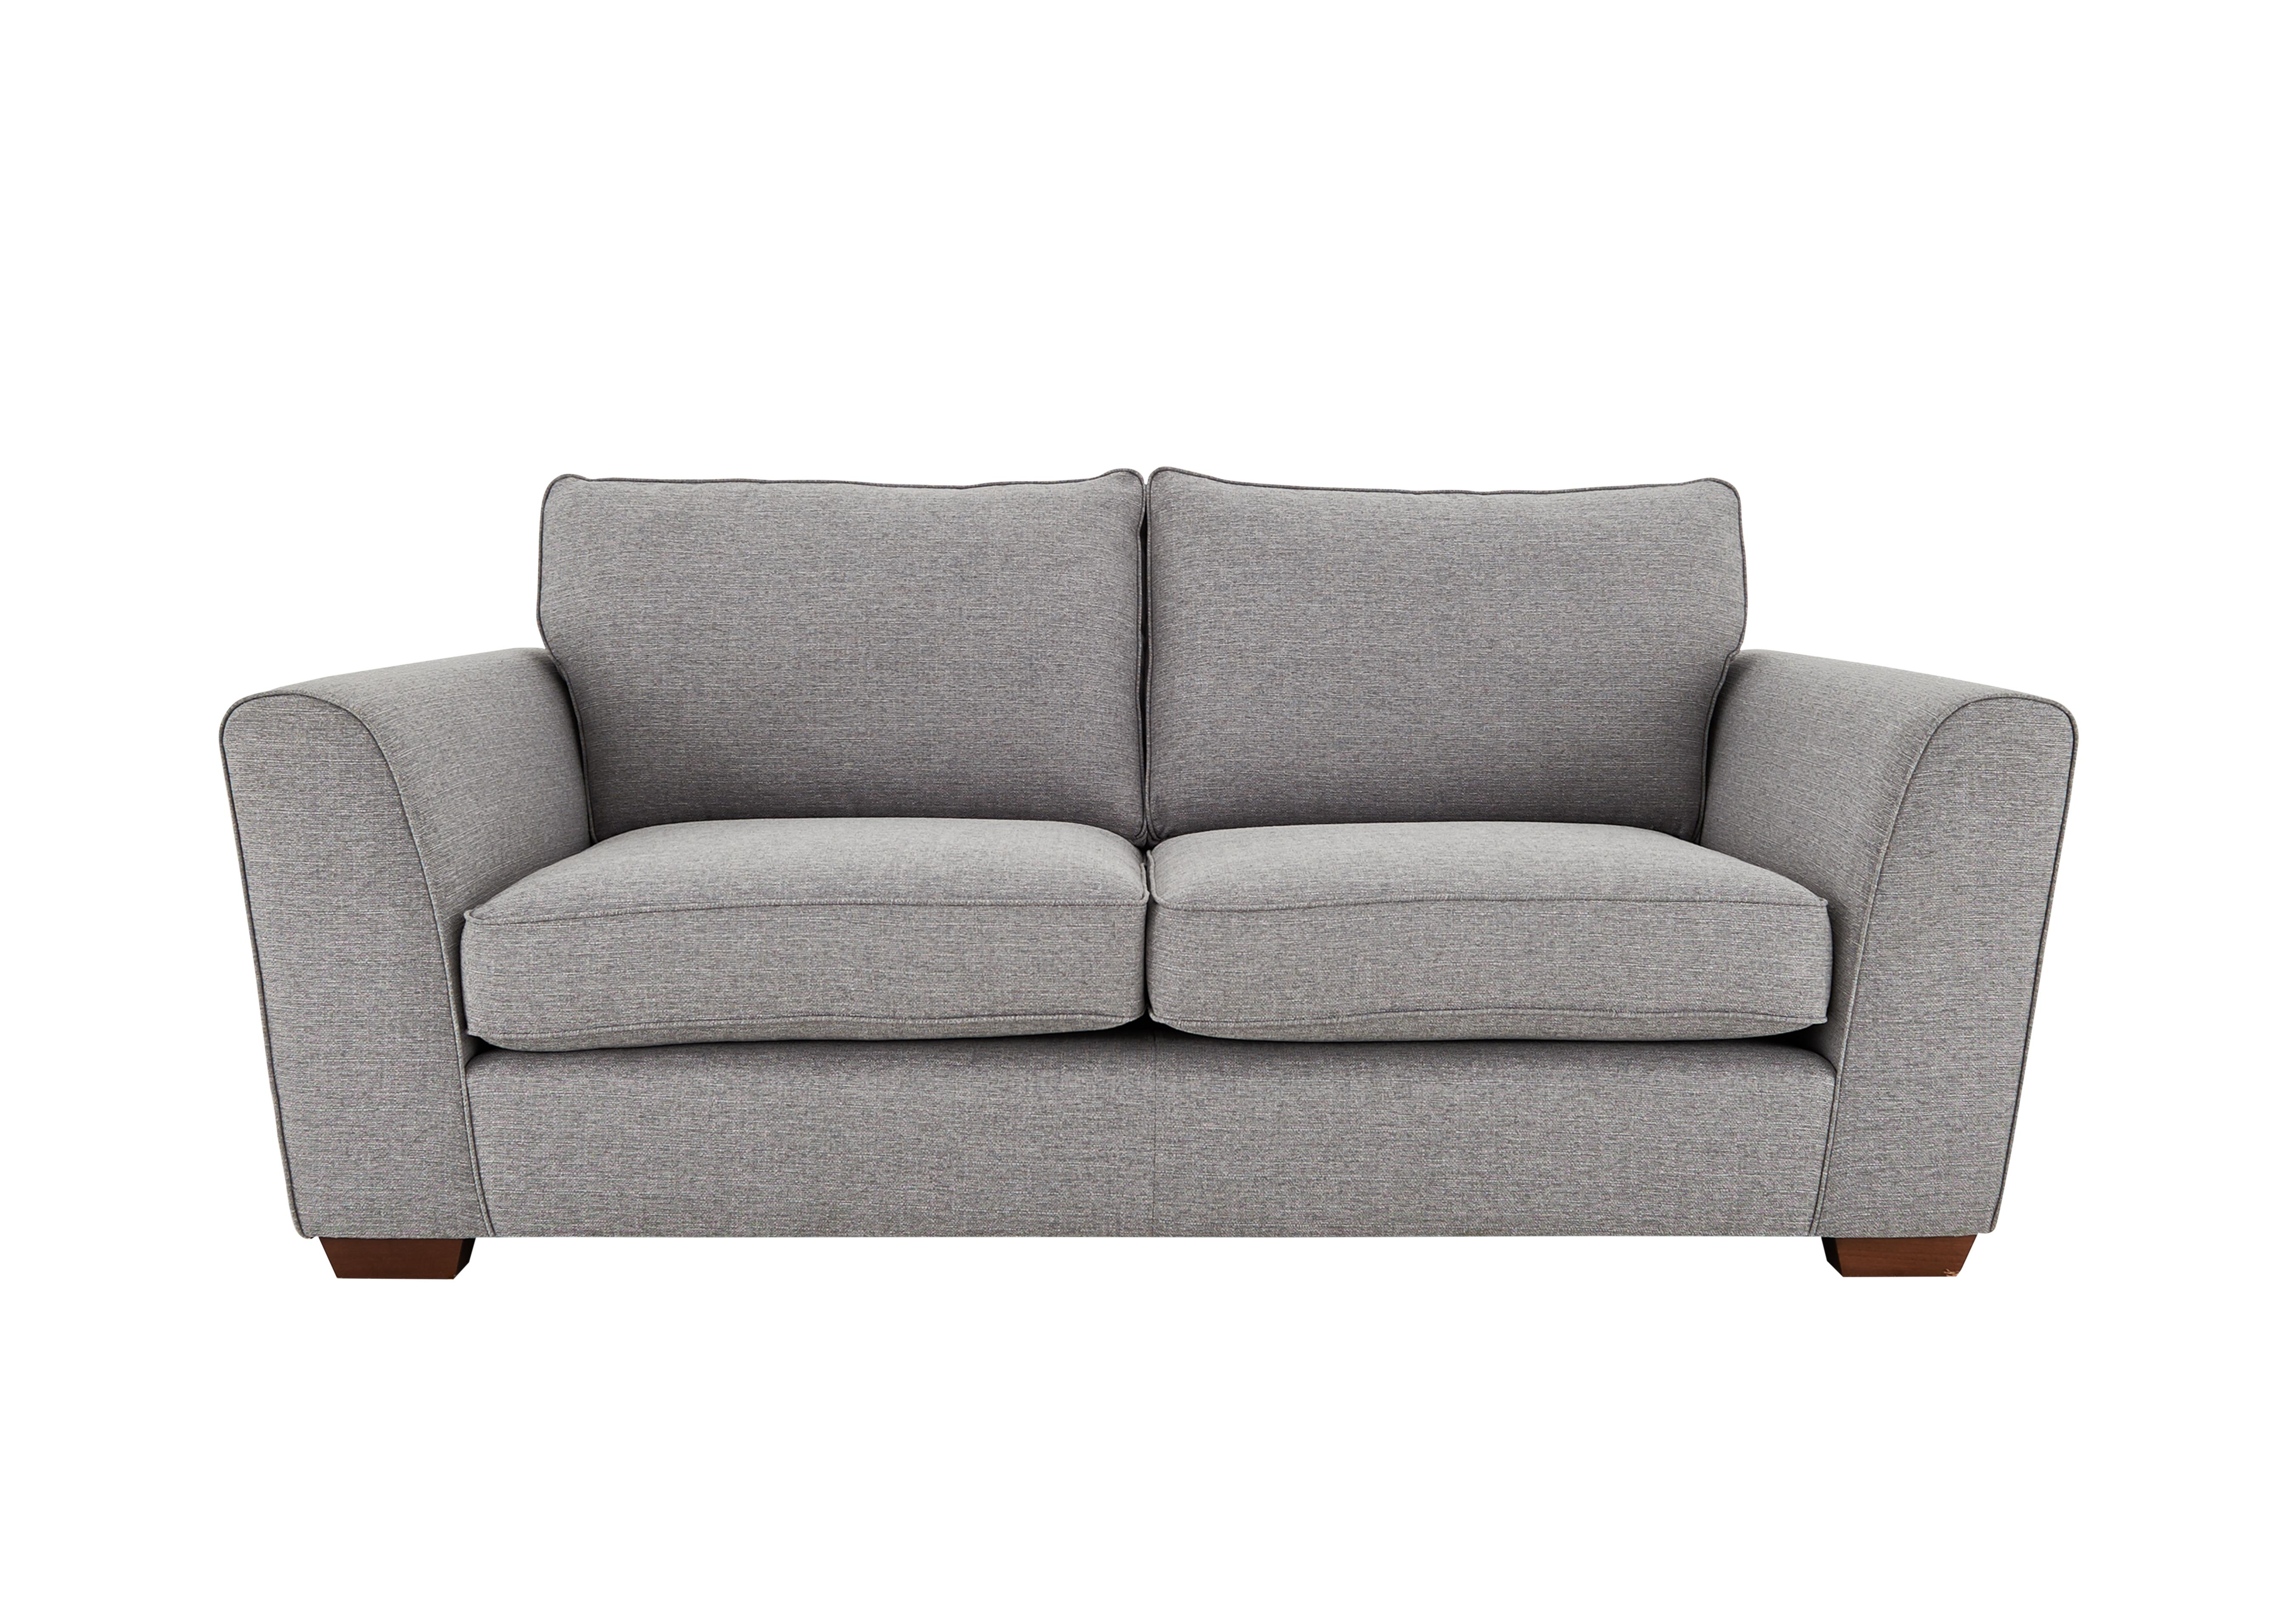 2 seater sofa bed furniture village leather sofas in india small uk cheap gradschoolfairs